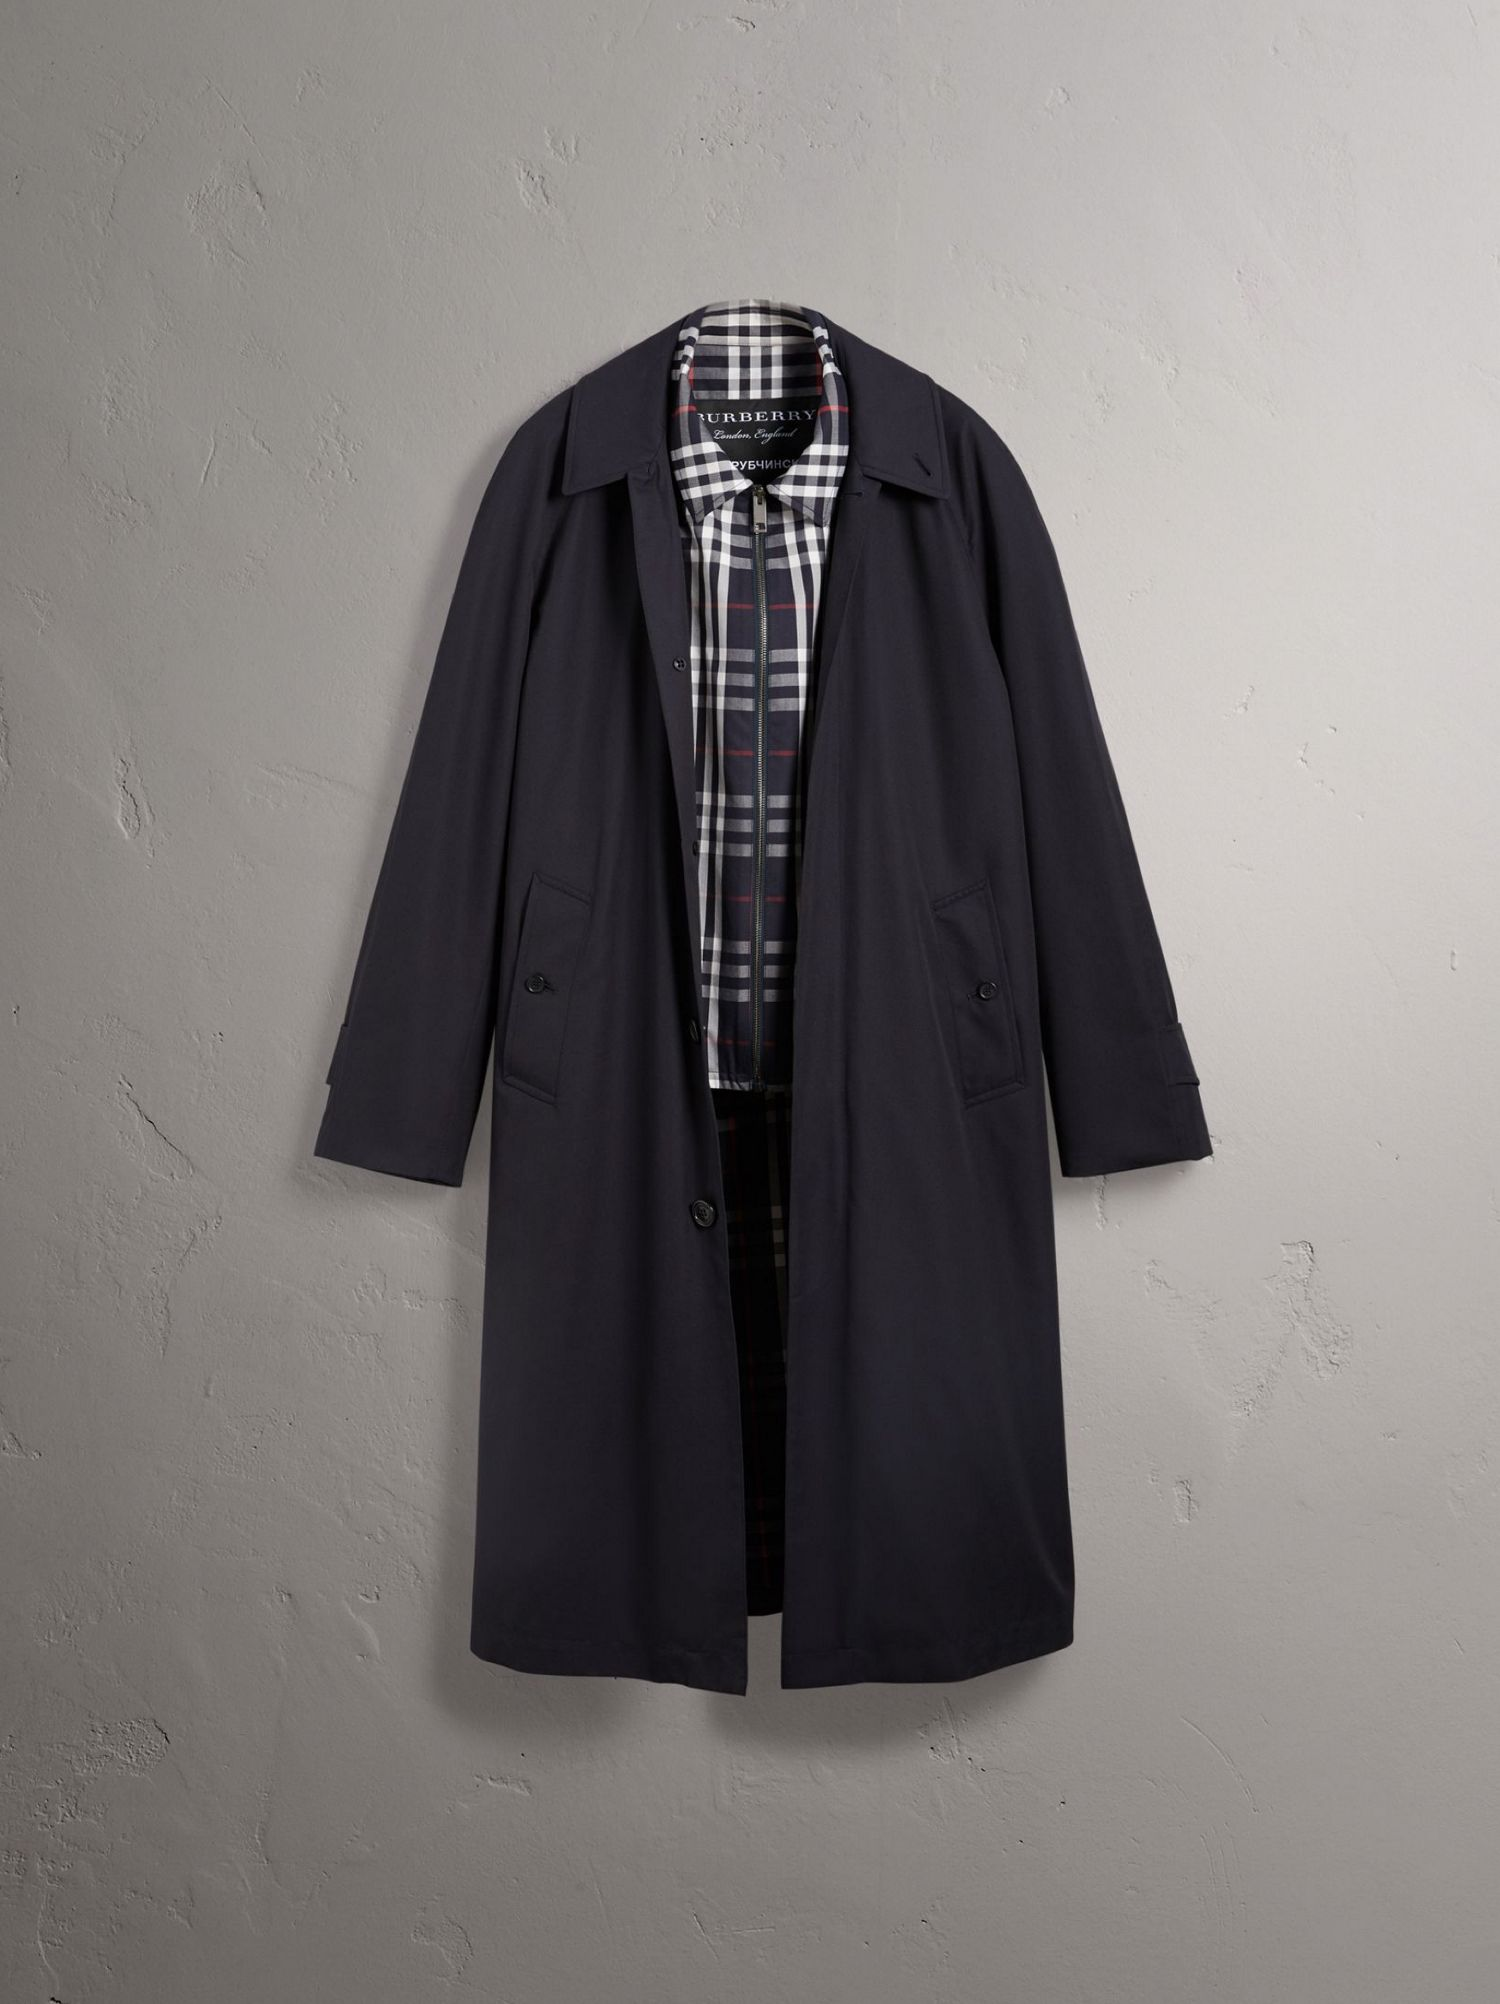 Gosha x Burberry Reconstructed Car Coat in Navy